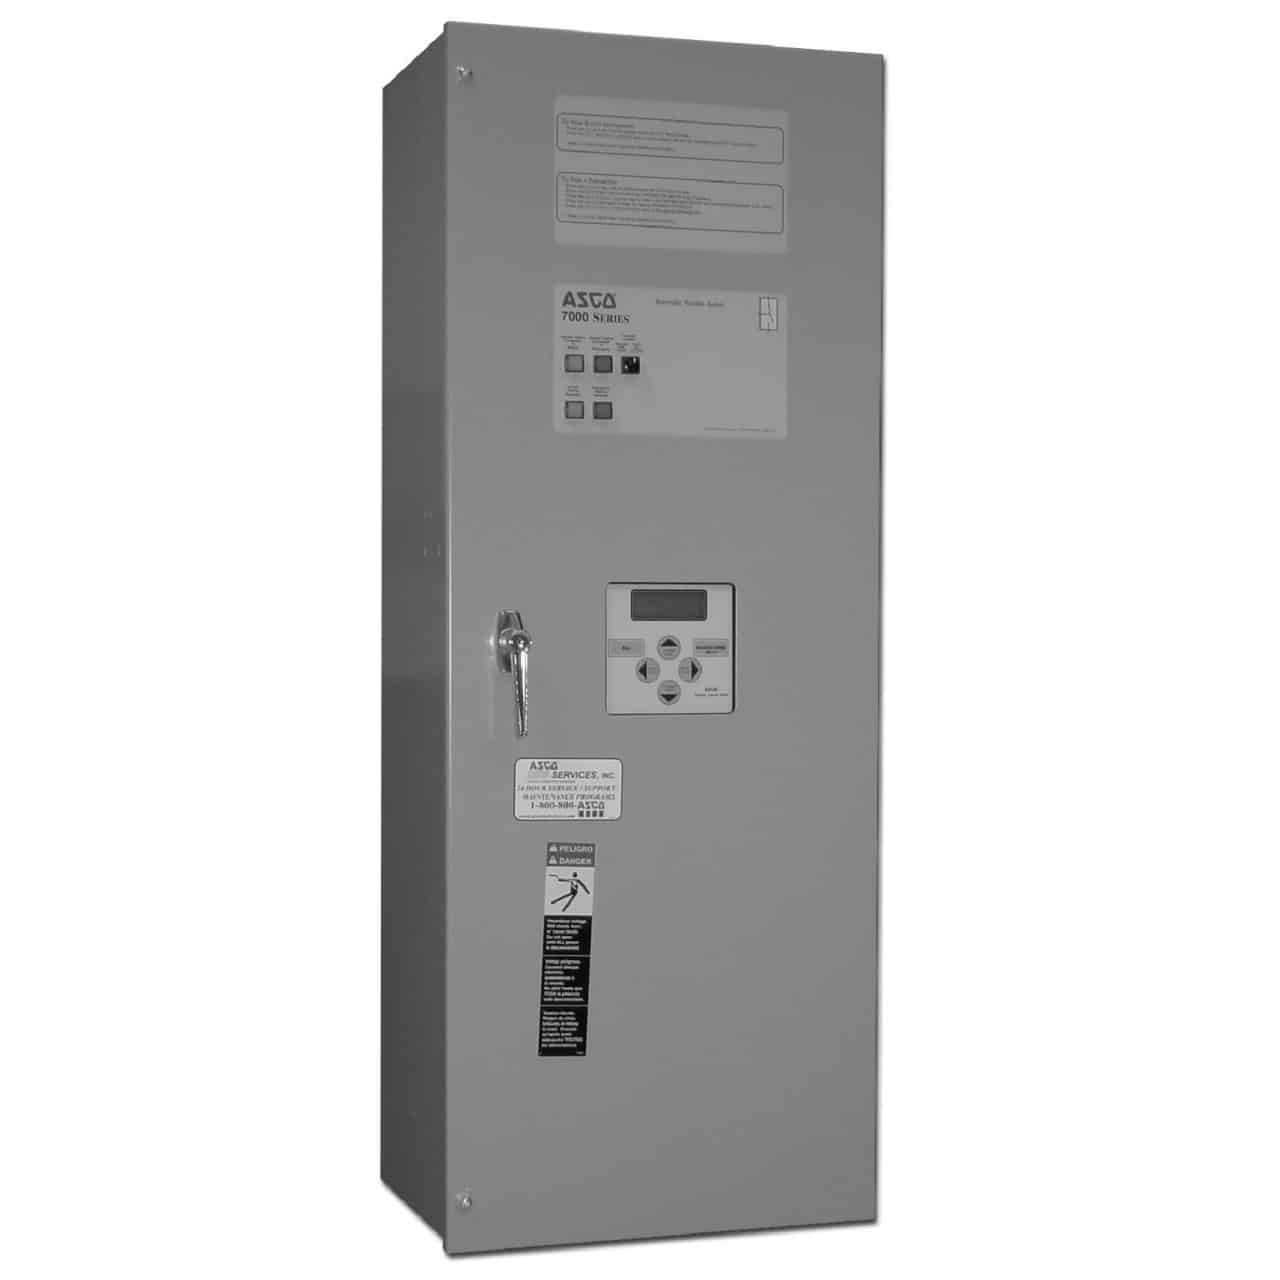 ASCO 7000 Series 230 Amp Automatic Transfer Switch